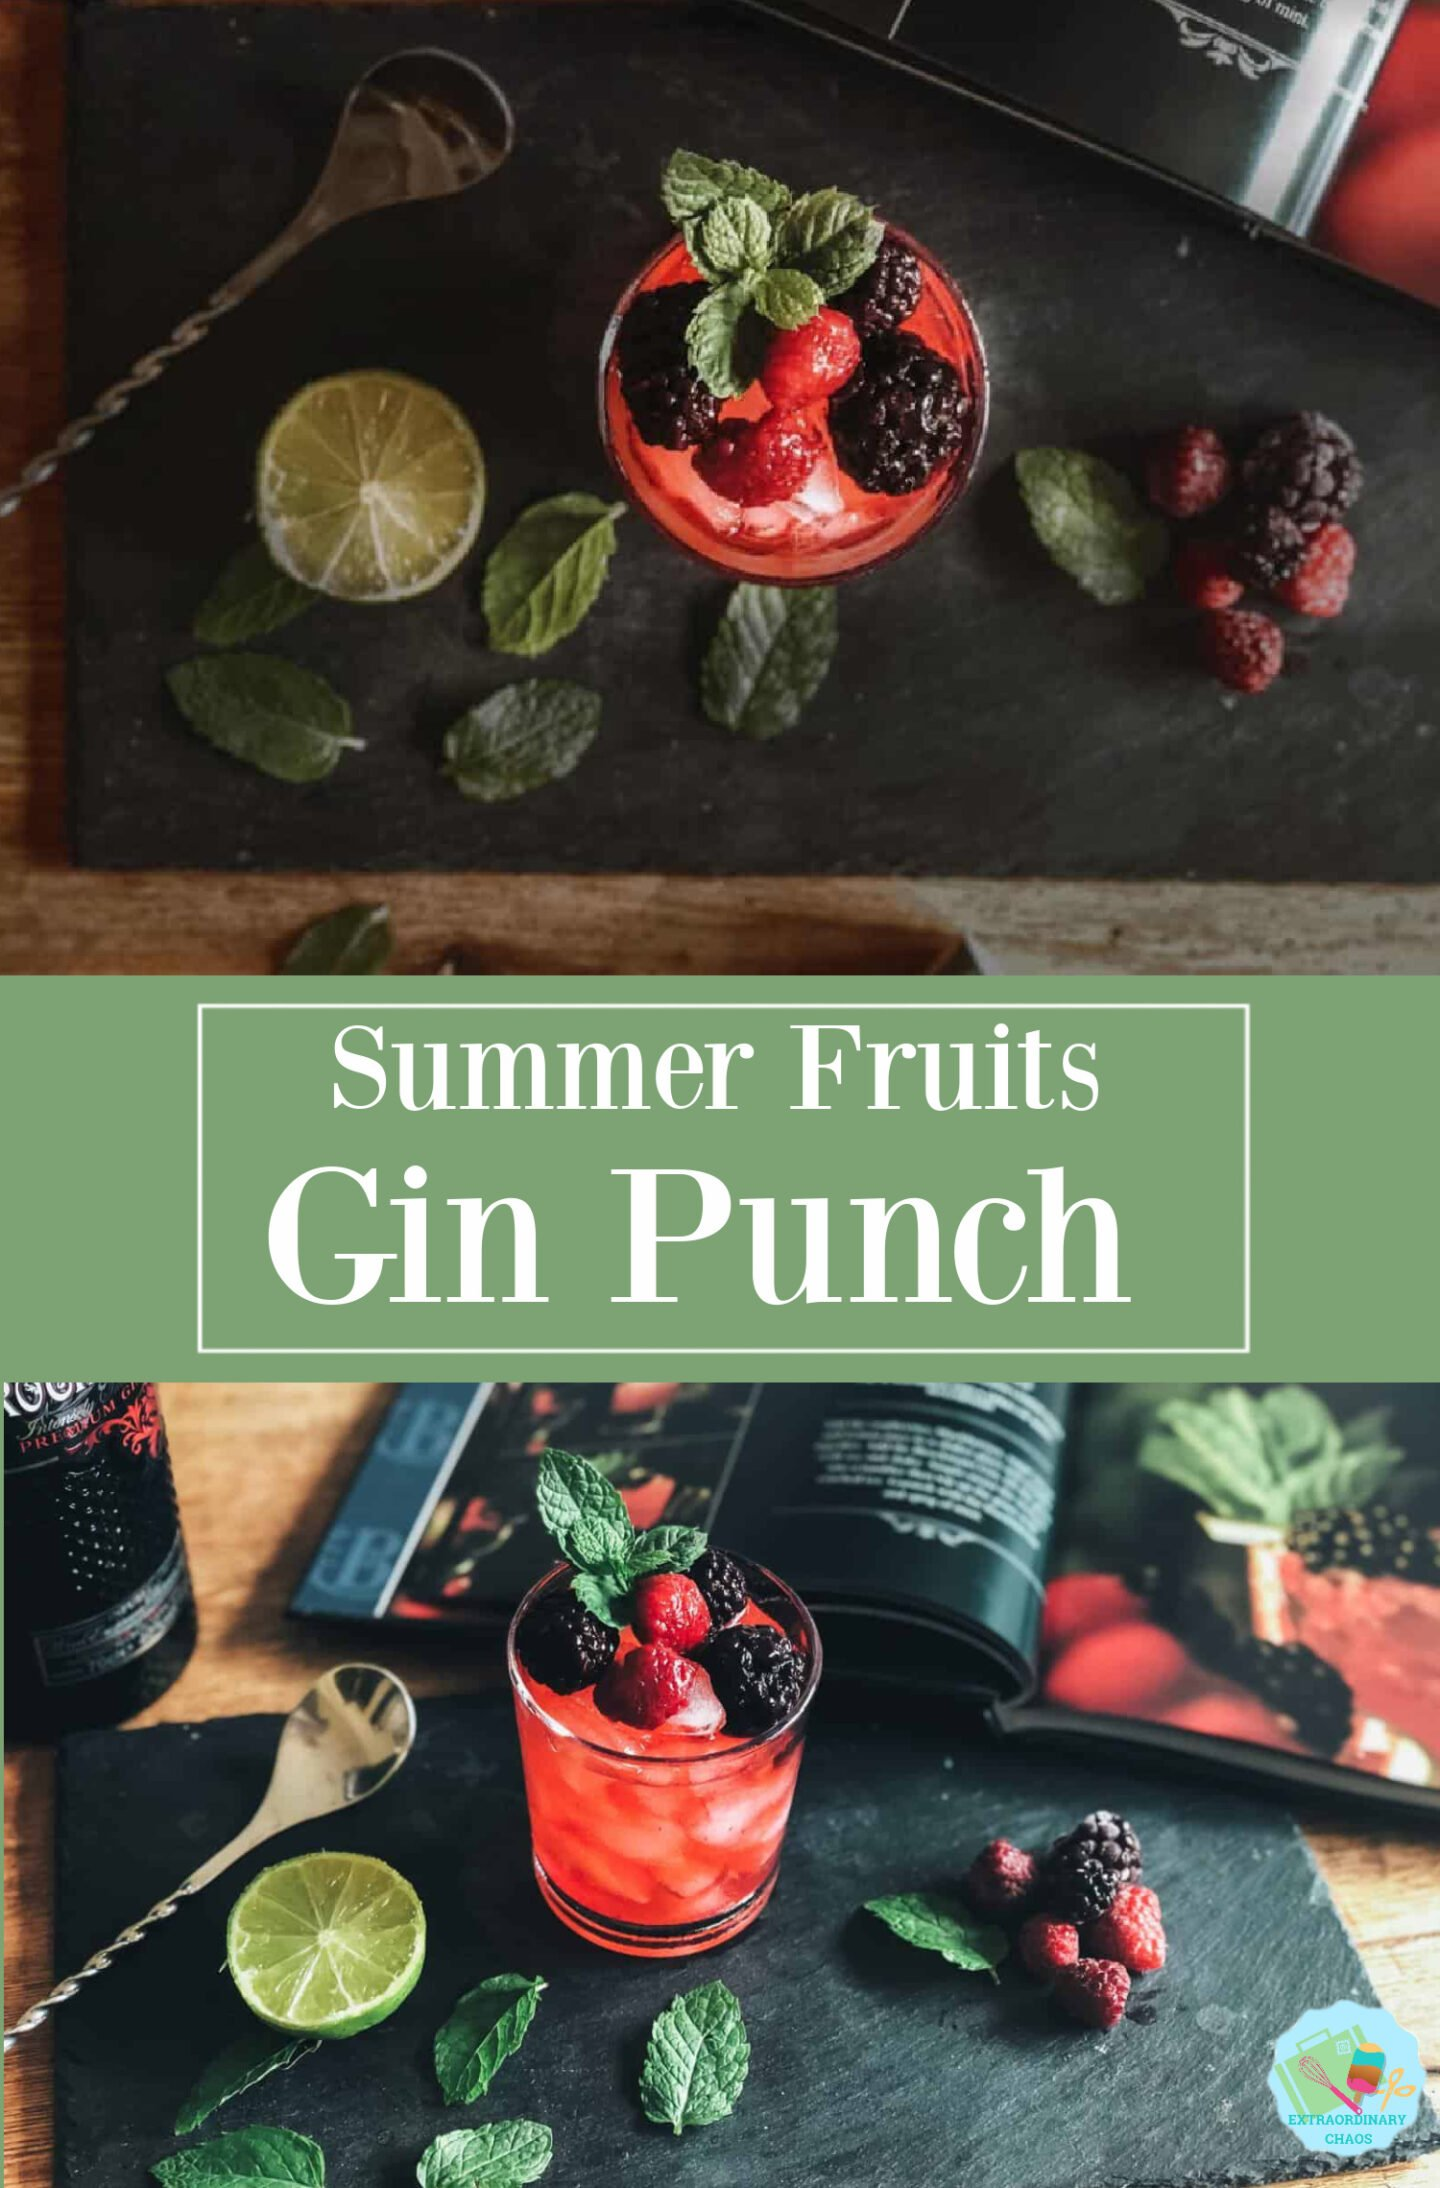 Summer fruits gin punch recipe and easy cocktail recipe to make for holiday parties and drinks